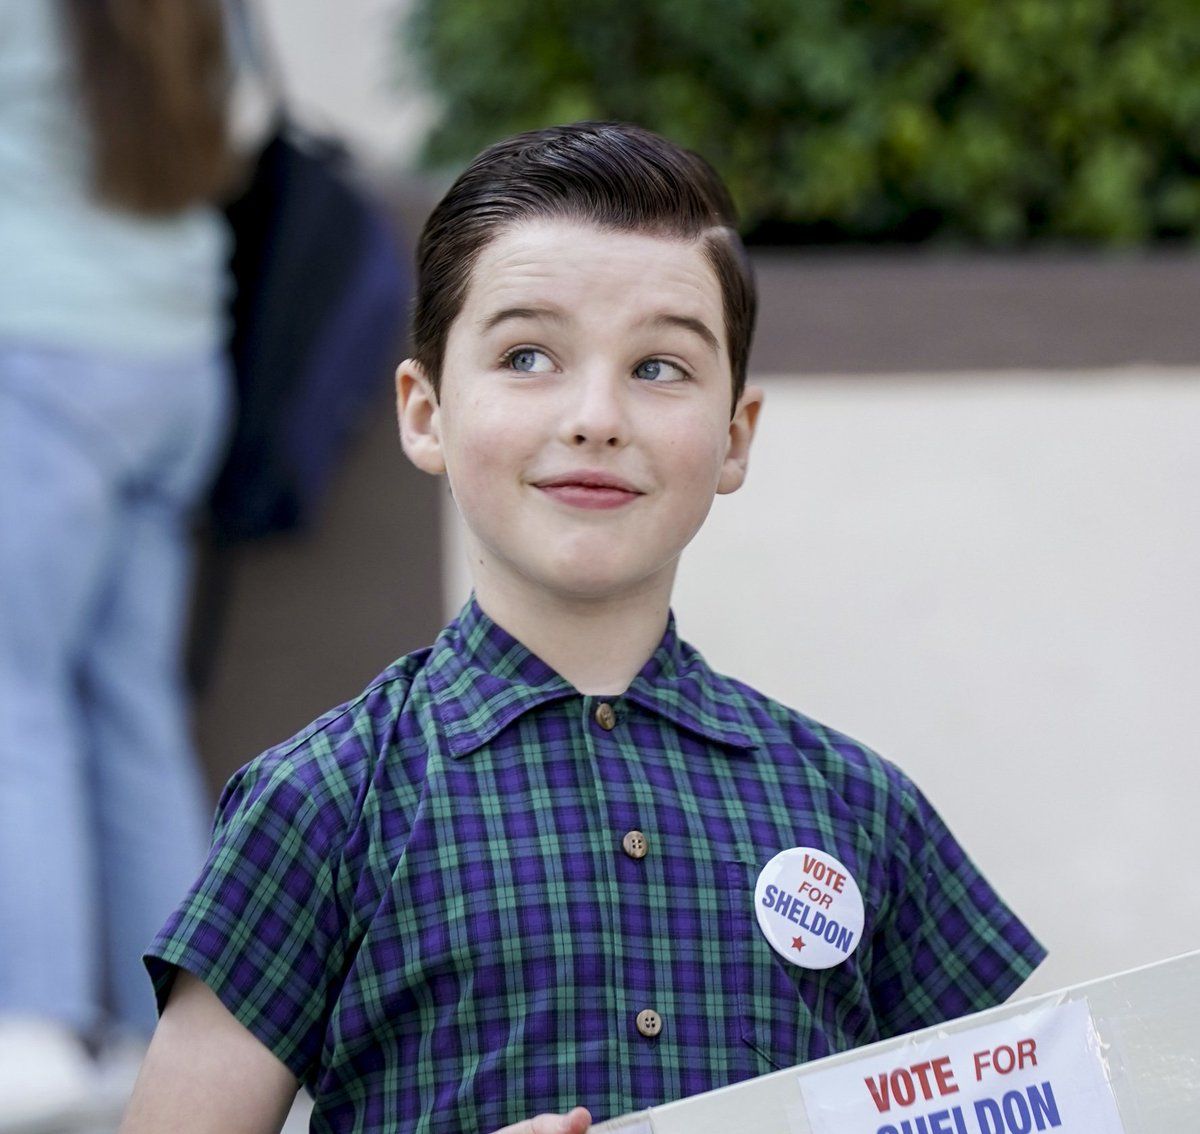 Help us wish a very #HappyBirthday to our favorite kid genius, @IainLoveTheatre! <br>http://pic.twitter.com/OaTZDddGCy